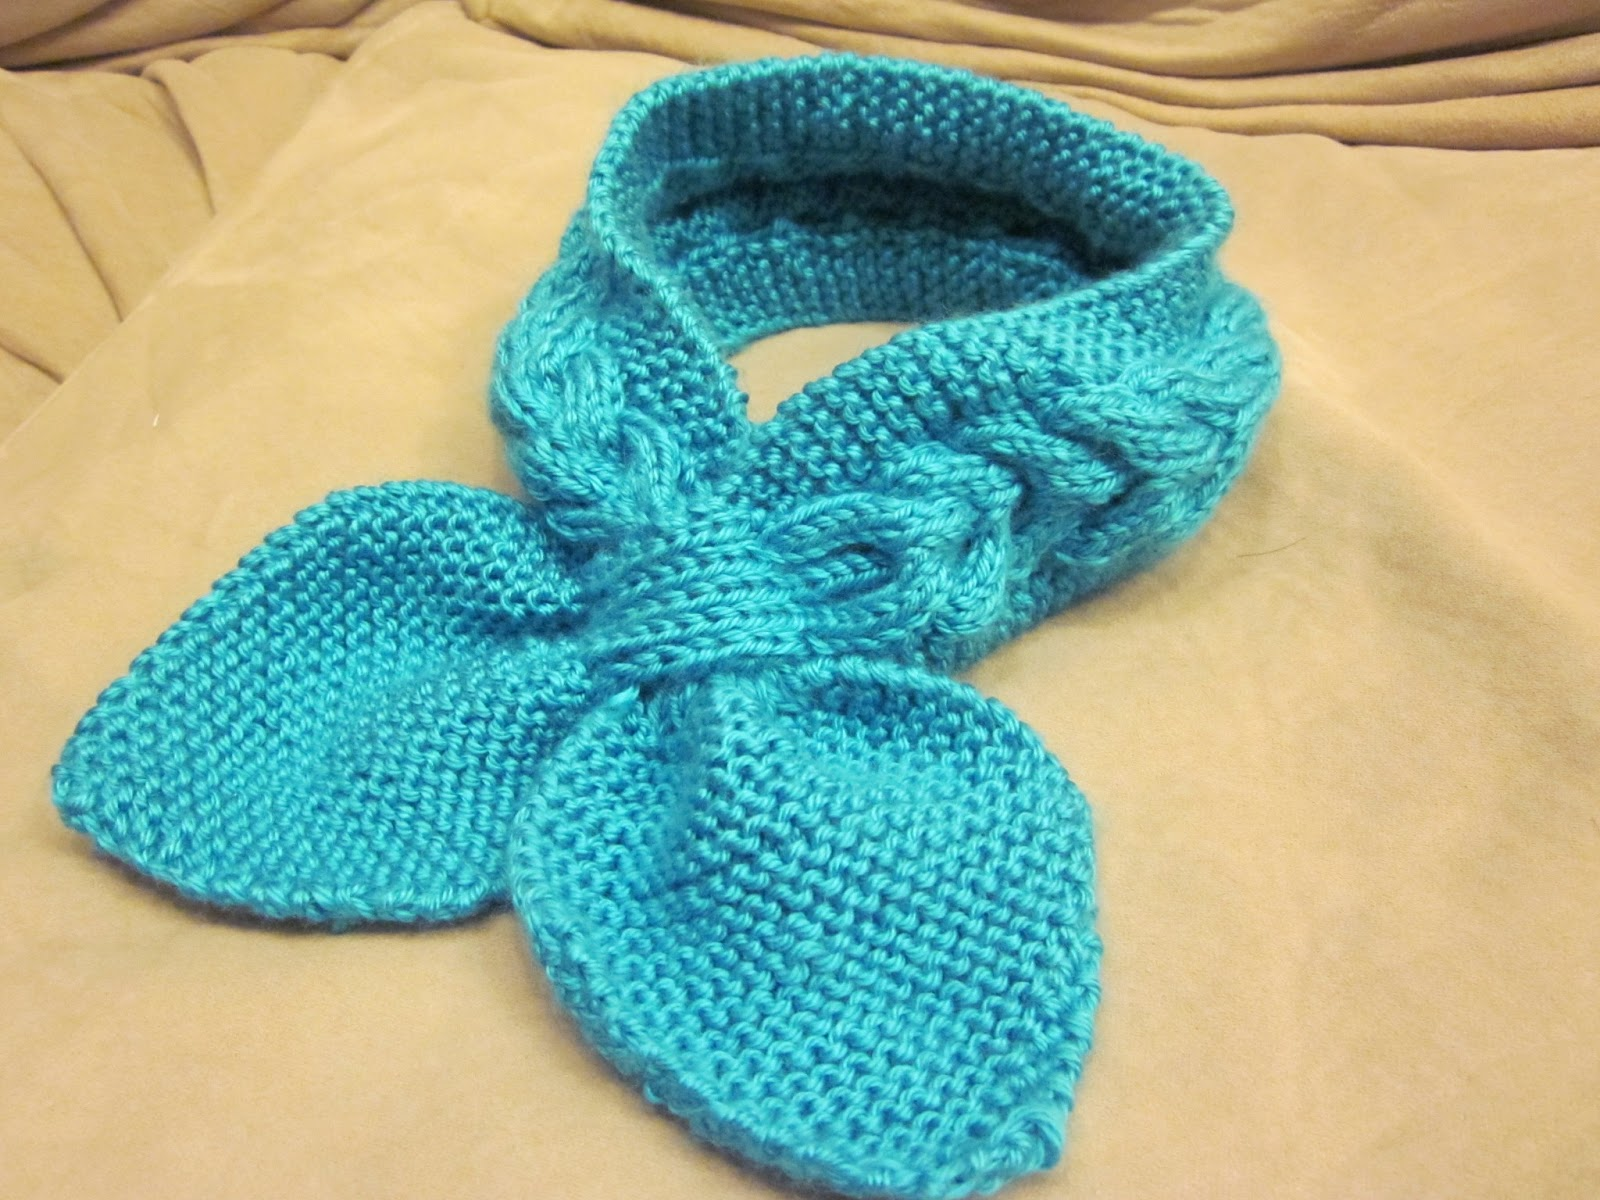 Loving Blueberry: Knitted Neck Scarf O(???)O